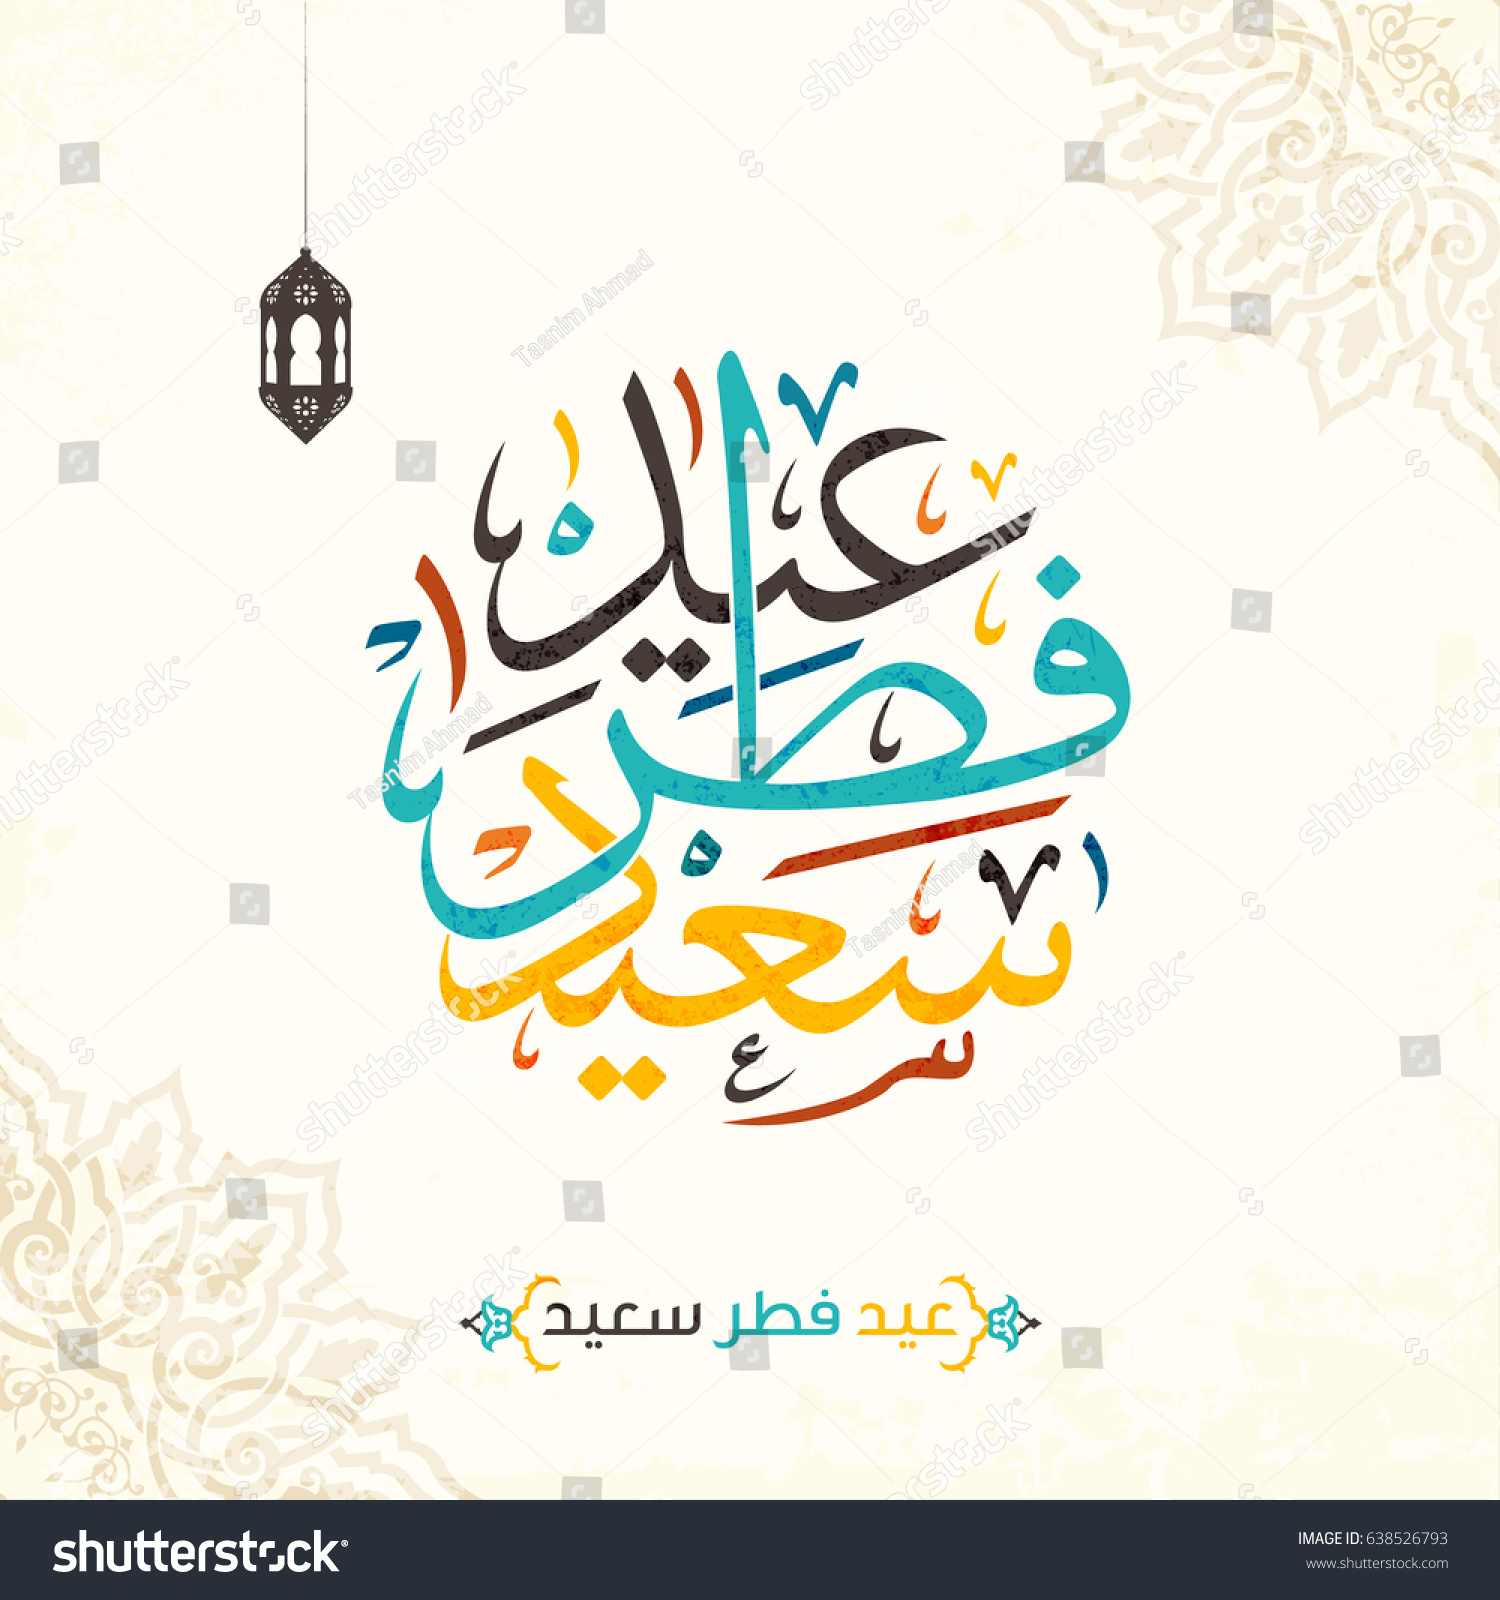 Arabic Islamic calligraphy of text Happy Eid, you can use it for islamic occasions like Eid Ul Fitr 1 #638526793